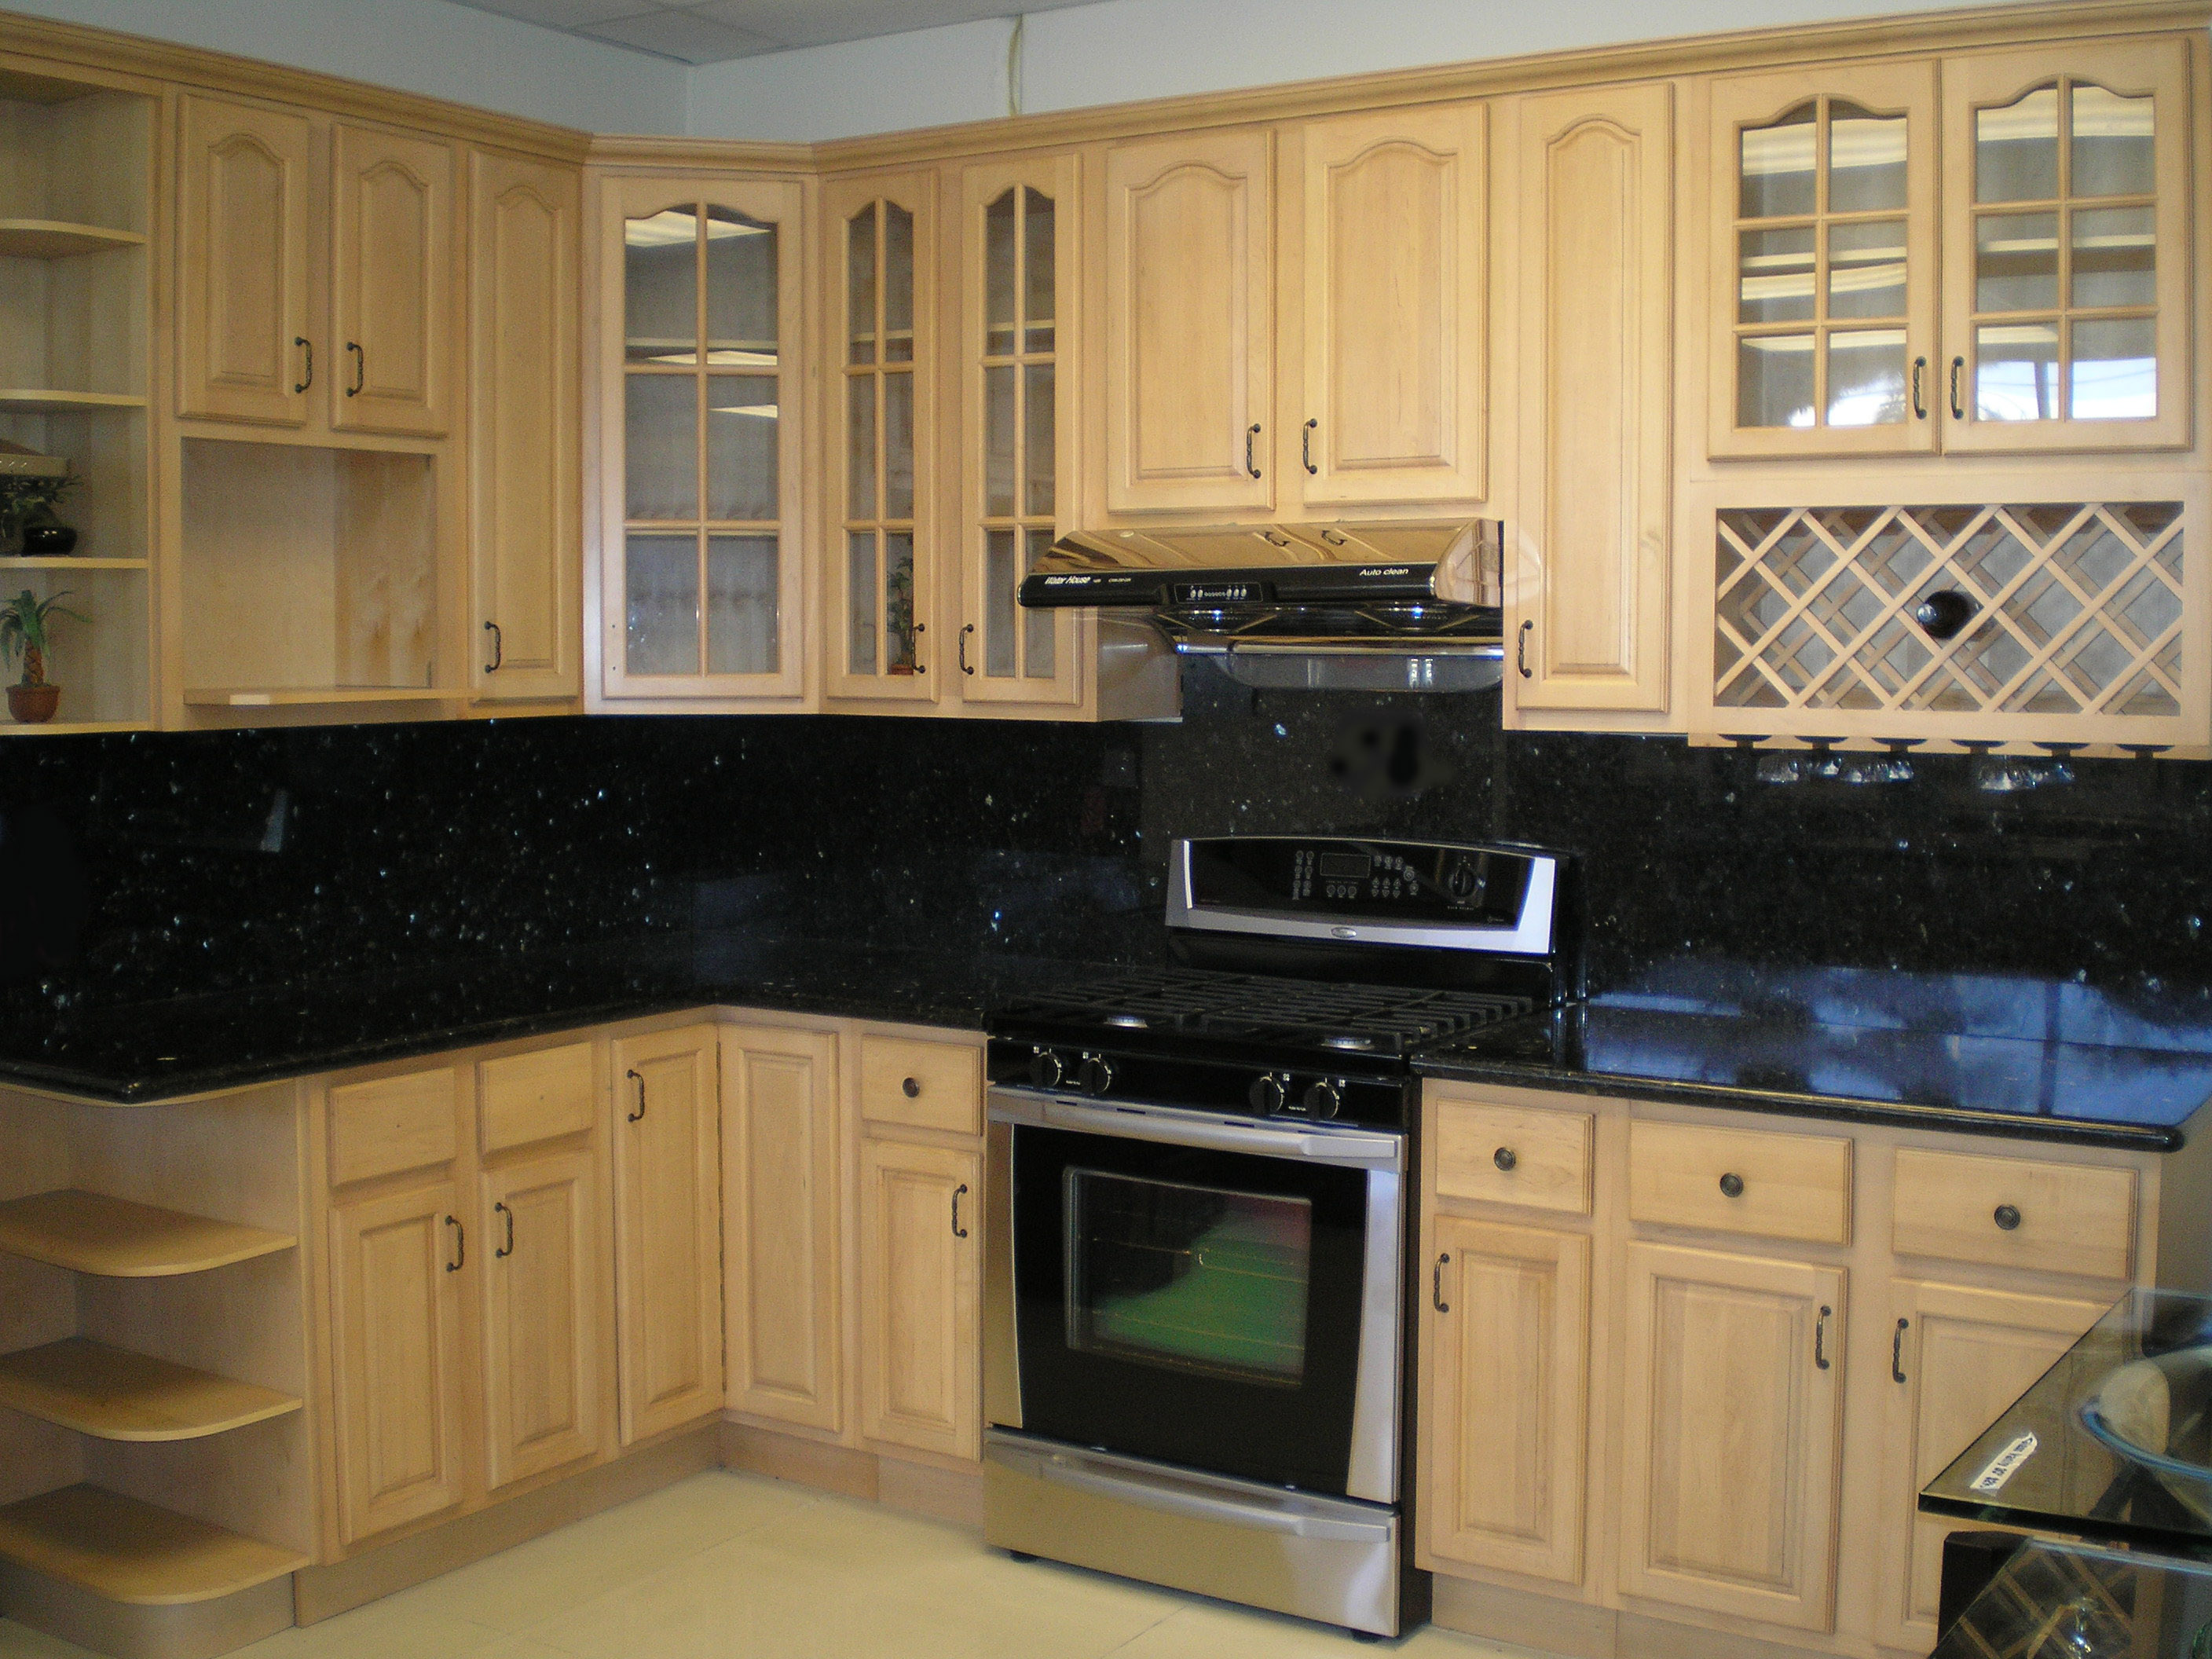 Great Kitchen with Maple Cabinets 2816 x 2112 · 1249 kB · jpeg